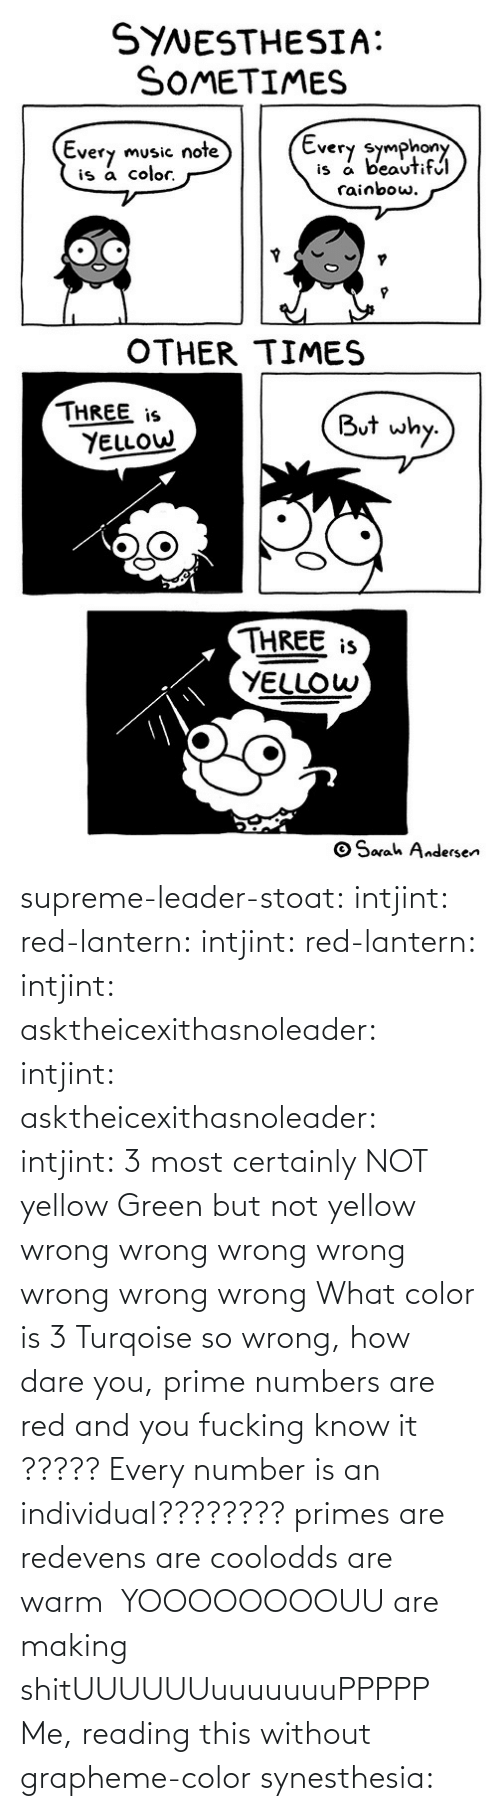 dare: supreme-leader-stoat: intjint:  red-lantern:  intjint:  red-lantern:  intjint:  asktheicexithasnoleader:  intjint:   asktheicexithasnoleader:  intjint:  3 most certainly NOT yellow   Green but not yellow  wrong wrong wrong wrong wrong wrong wrong    What color is 3  Turqoise  so wrong, how dare you, prime numbers are red and you fucking know it   ????? Every number is an individual????????  primes are redevens are coolodds are warm   YOOOOOOOOUU are making shitUUUUUUuuuuuuuPPPPP  Me, reading this without grapheme-color synesthesia: